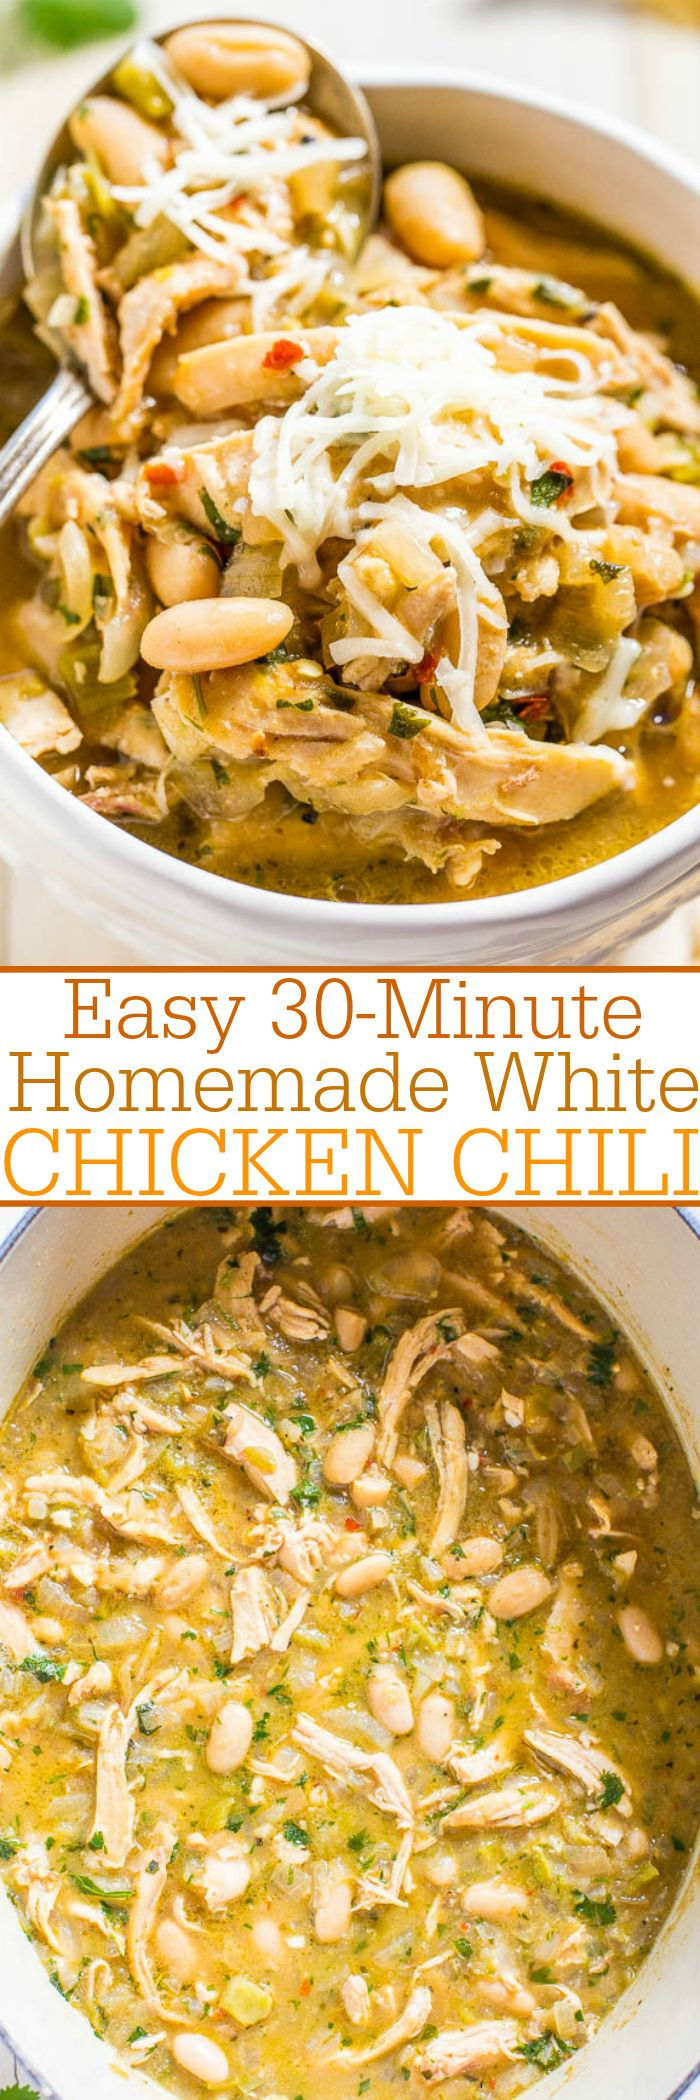 Easy+30-Minute+Homemade+White+Chicken+Chili+-+Hearty,+healthy,+loaded+with+tender+chicken,+and+packed+with+bold+flavor!!+Fast+and+easy+comfort+food+that+everyone+loves!!+It'll+be+on+rotation+all+winter!